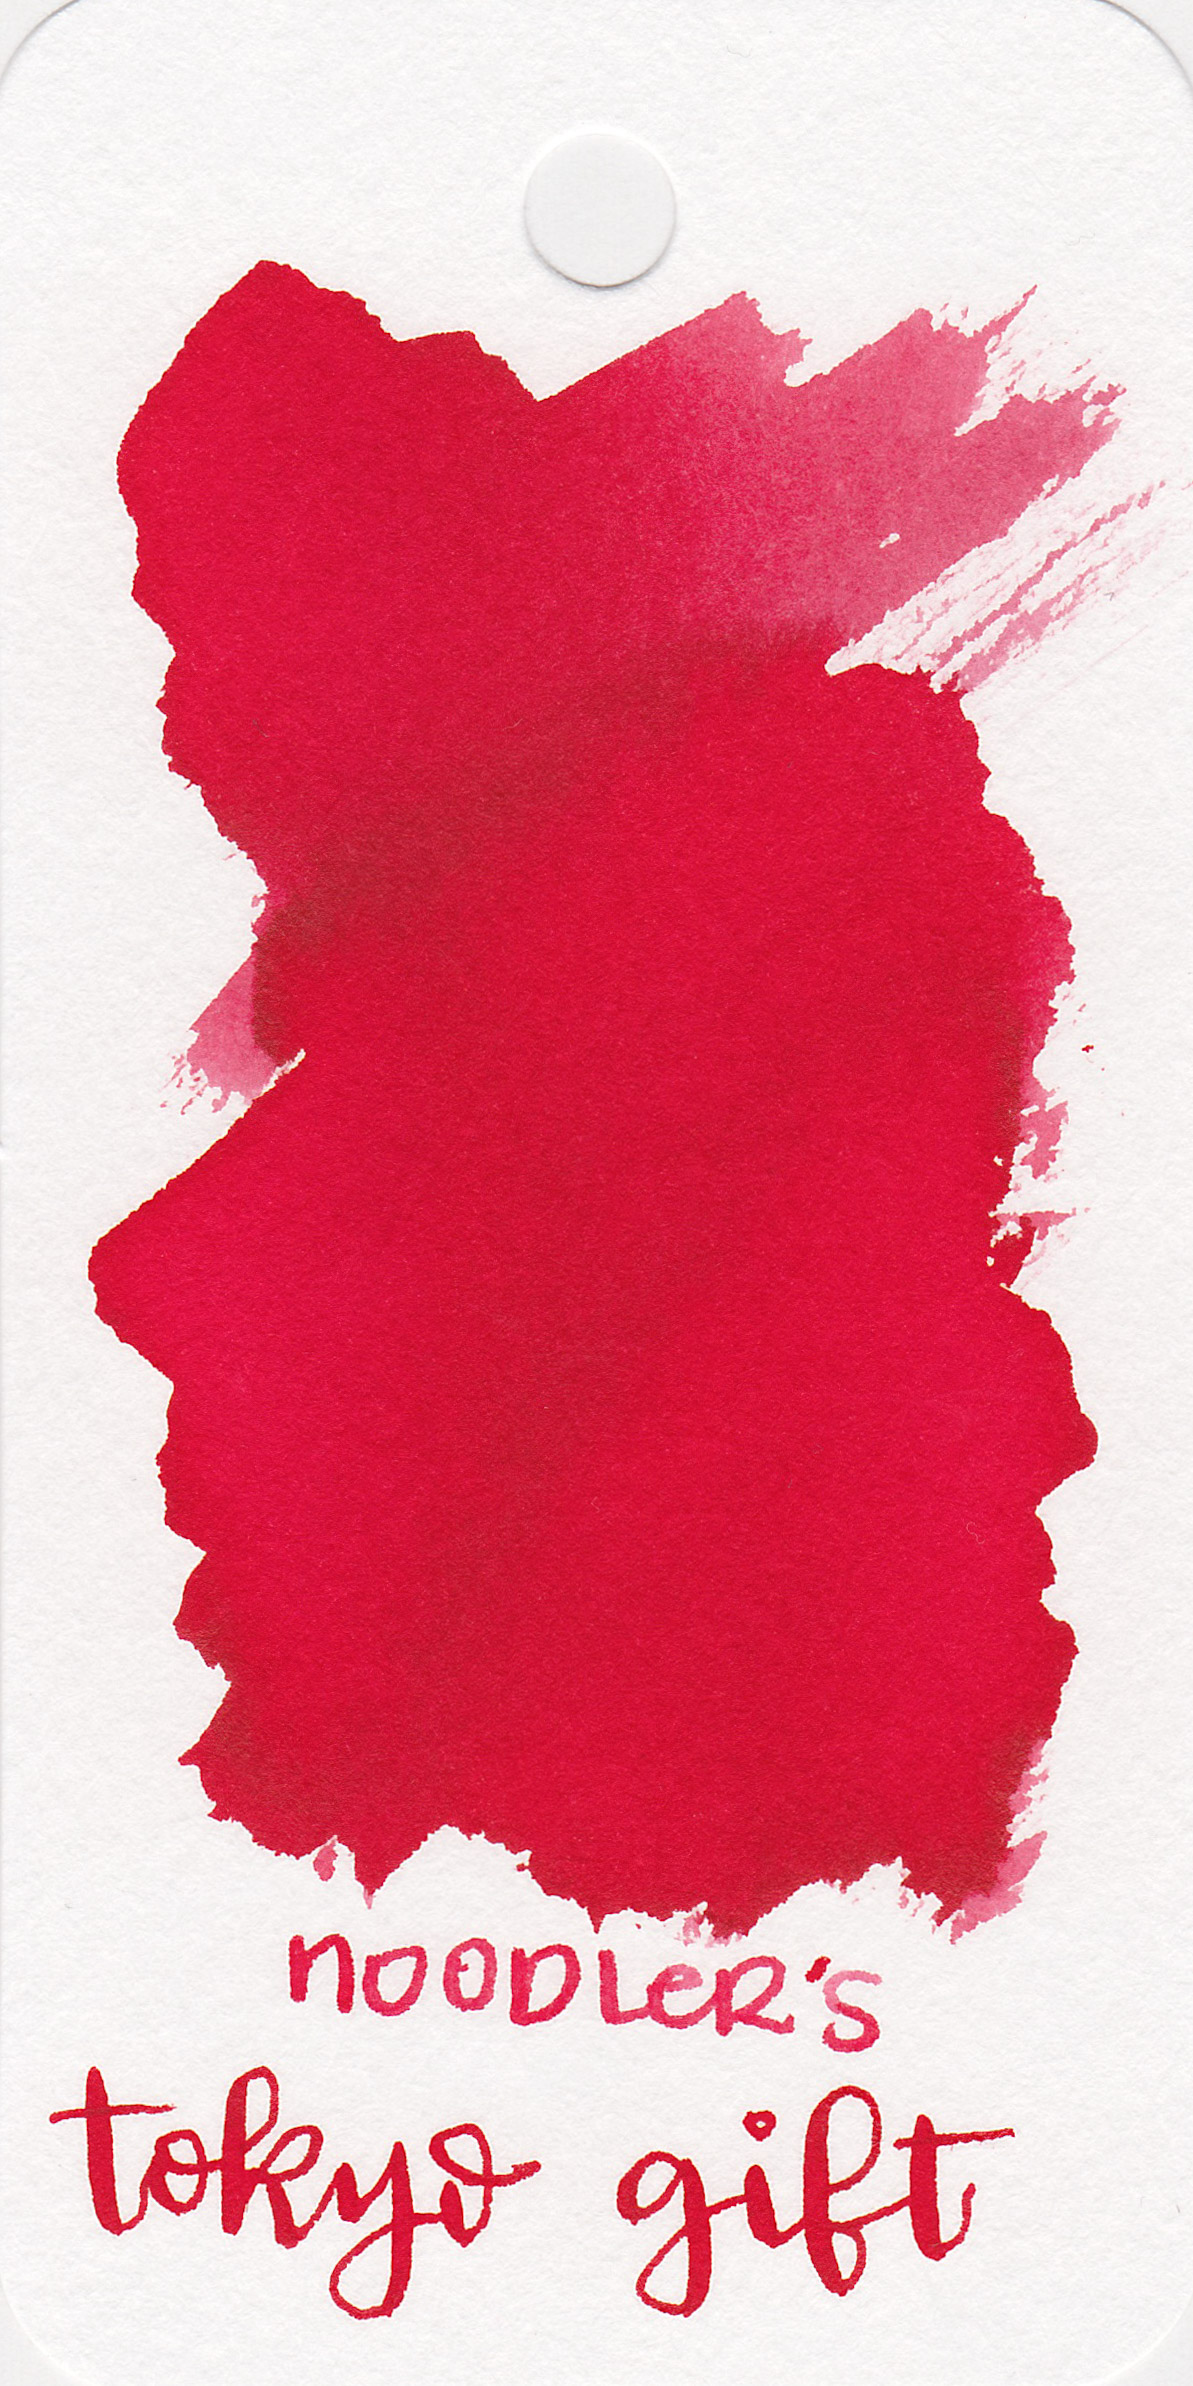 The color: - Tokyo Gift is a medium red. The ink is described as pink most places, but all I see is red.